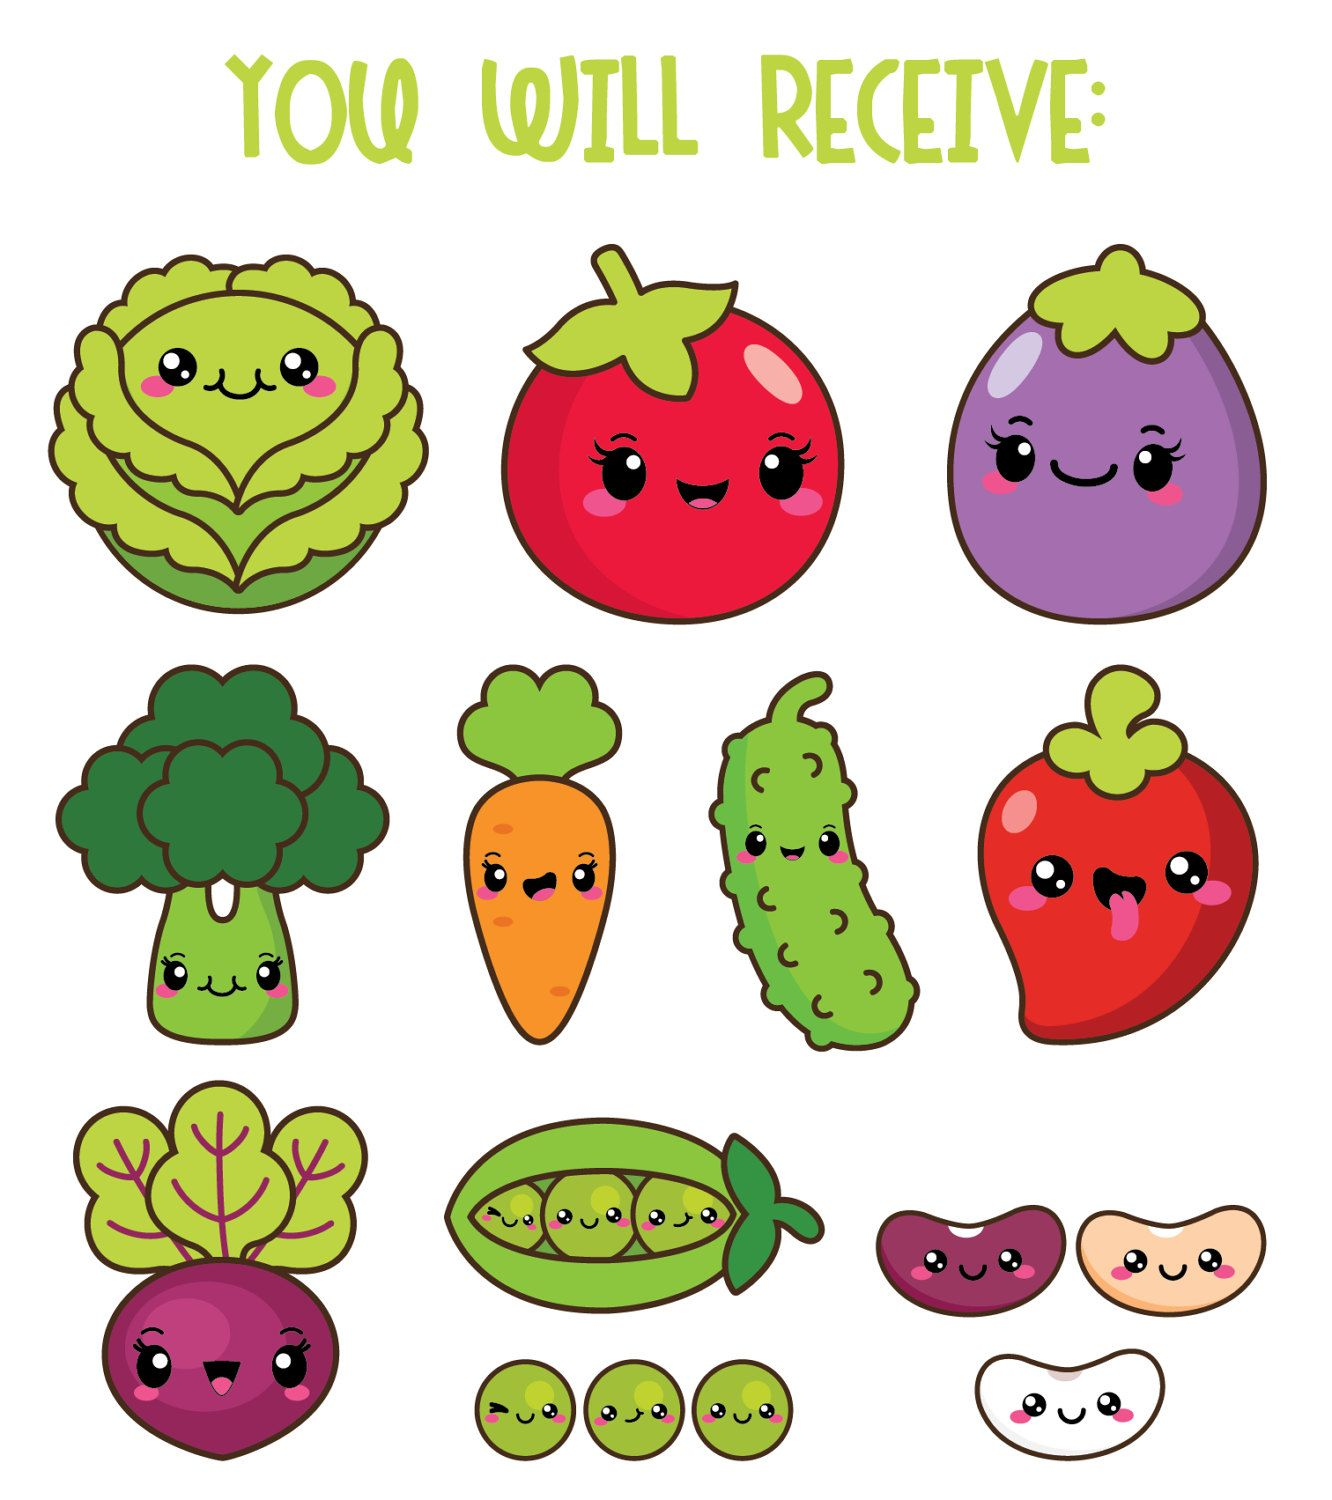 Kawaii Vegetables Clipart Kawaii Veggies Clipart Healthy Etsy In 2020 Cute Food Drawings Clip Art Vegetable Drawing